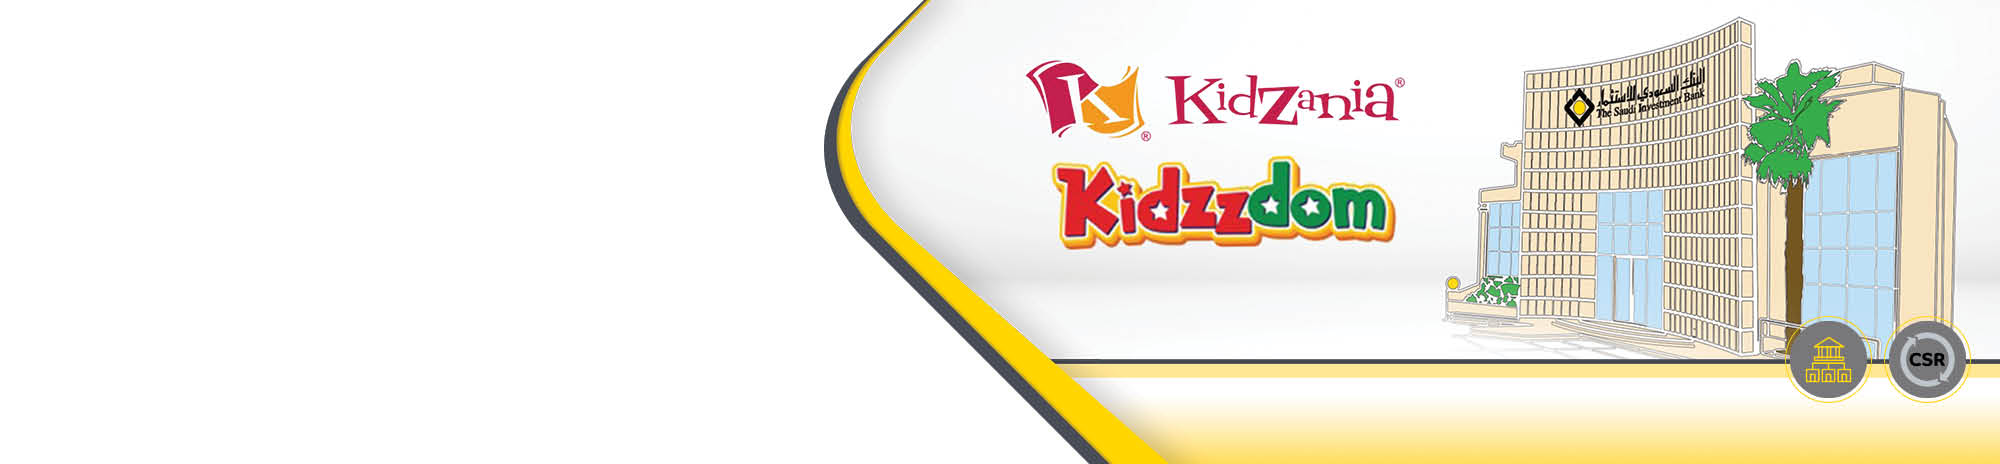 virtual-branches-kidzzdom-kid